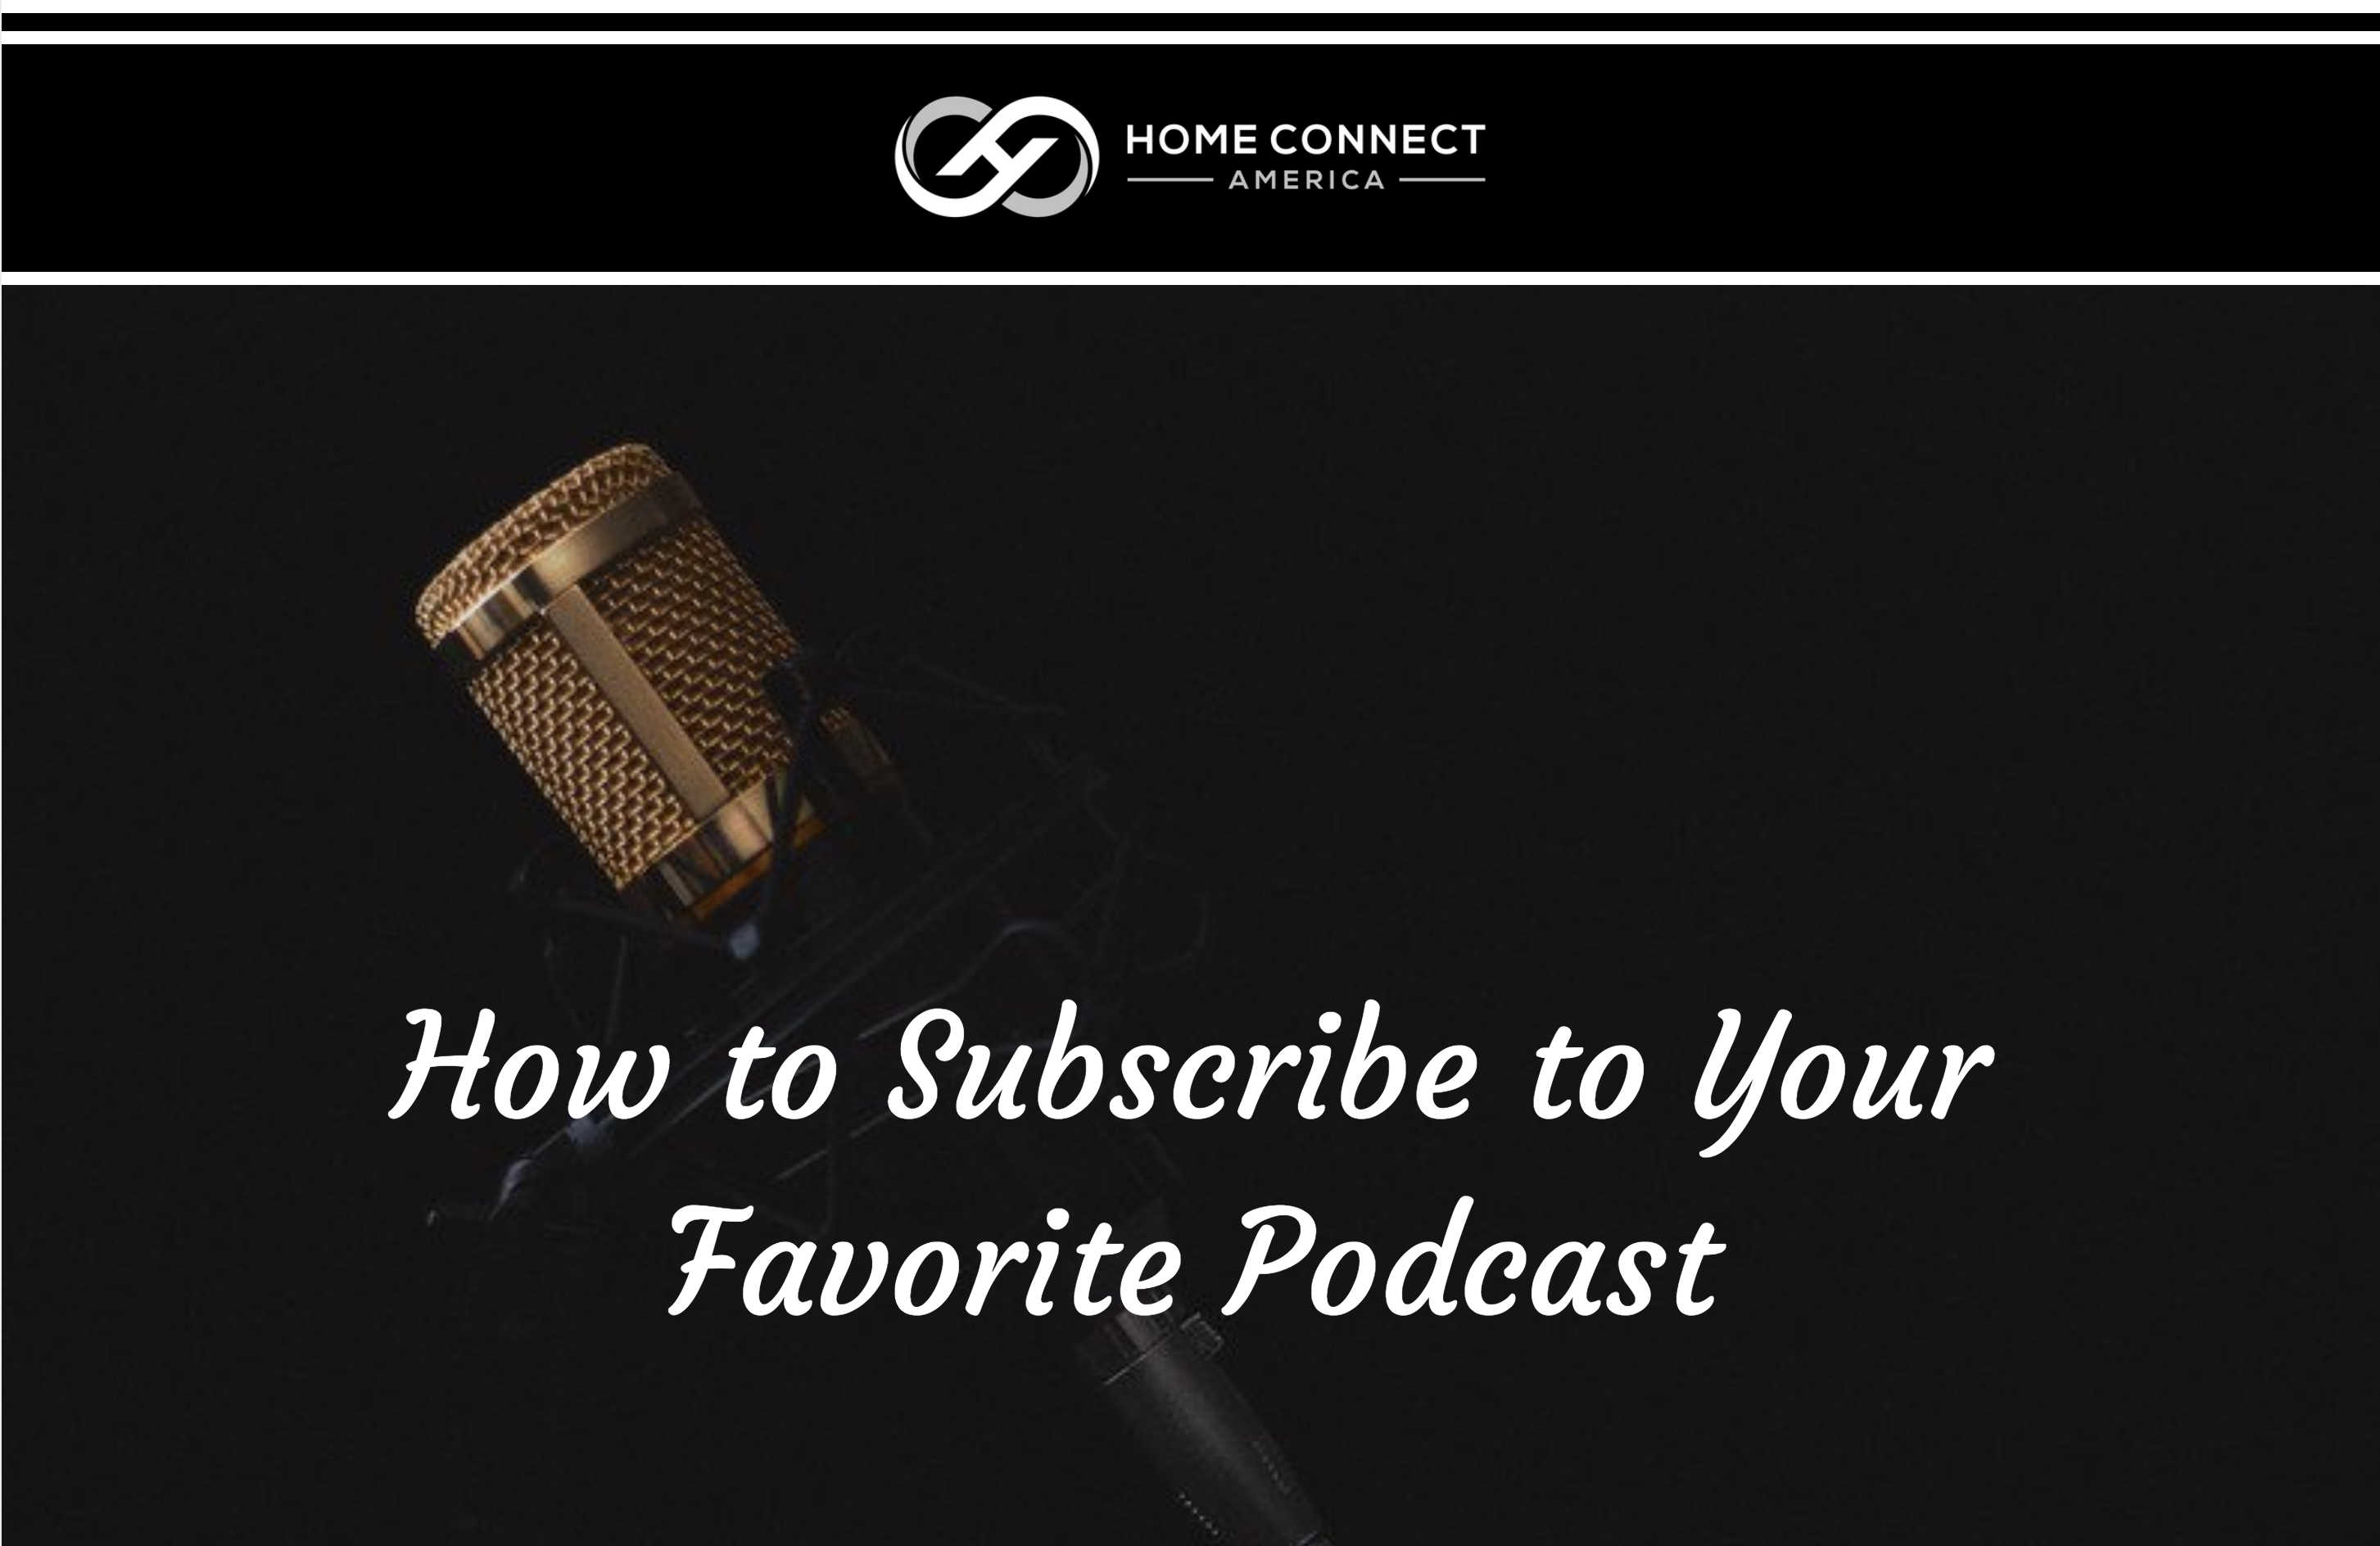 How to Subscribe to Your Favorite Podcast